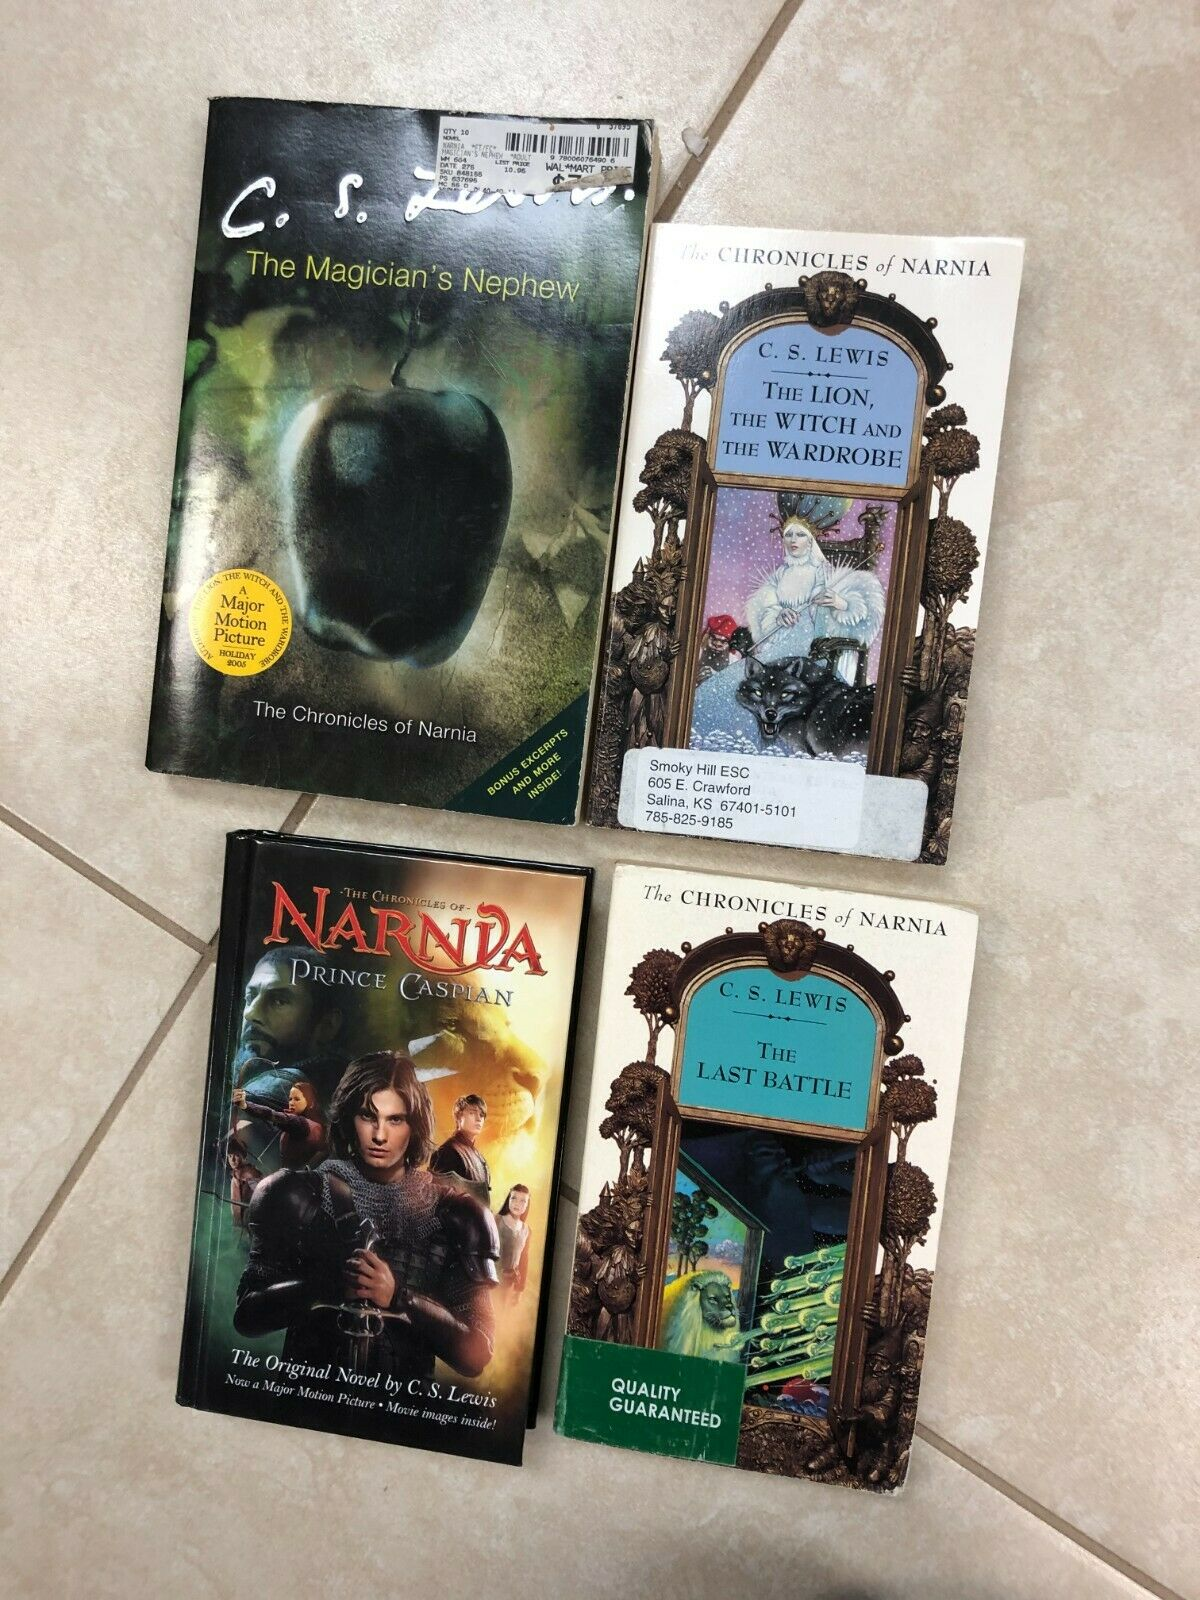 4 CHRONICLES OF NARNIA books by C. S. Lewis, 4 books |